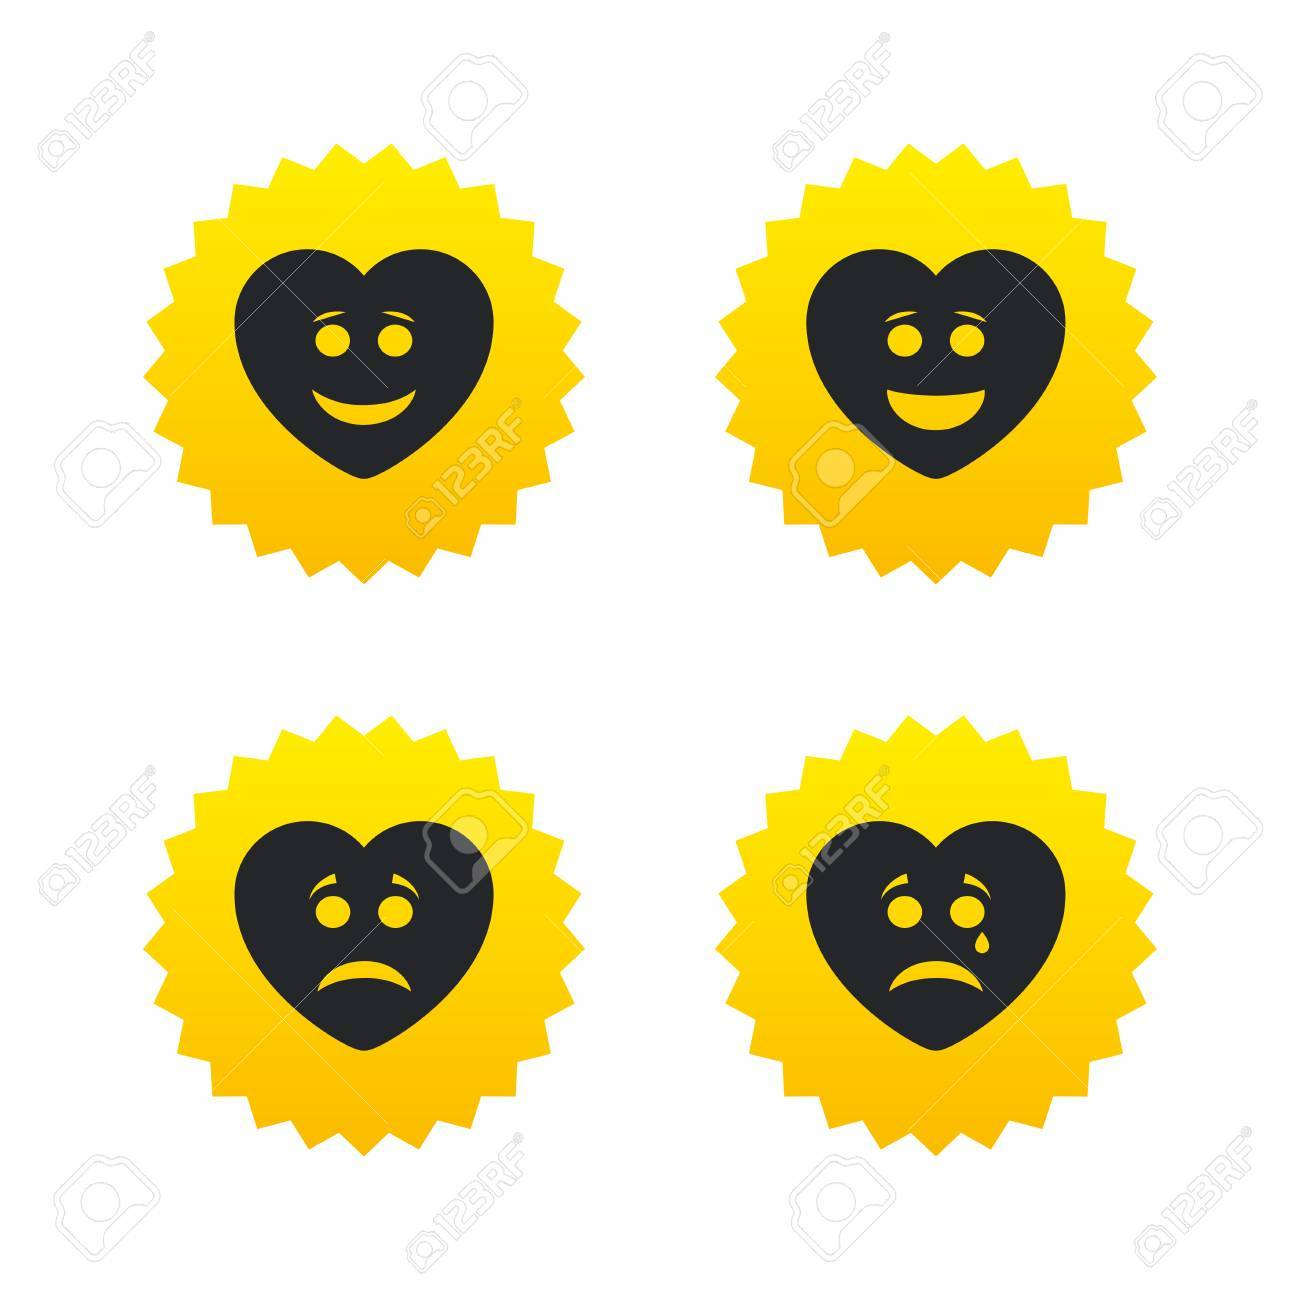 Heart smiley symbol image collections symbol and sign ideas heart smile face icons happy sad cry signs happy smiley chat heart smile face icons happy buycottarizona Choice Image